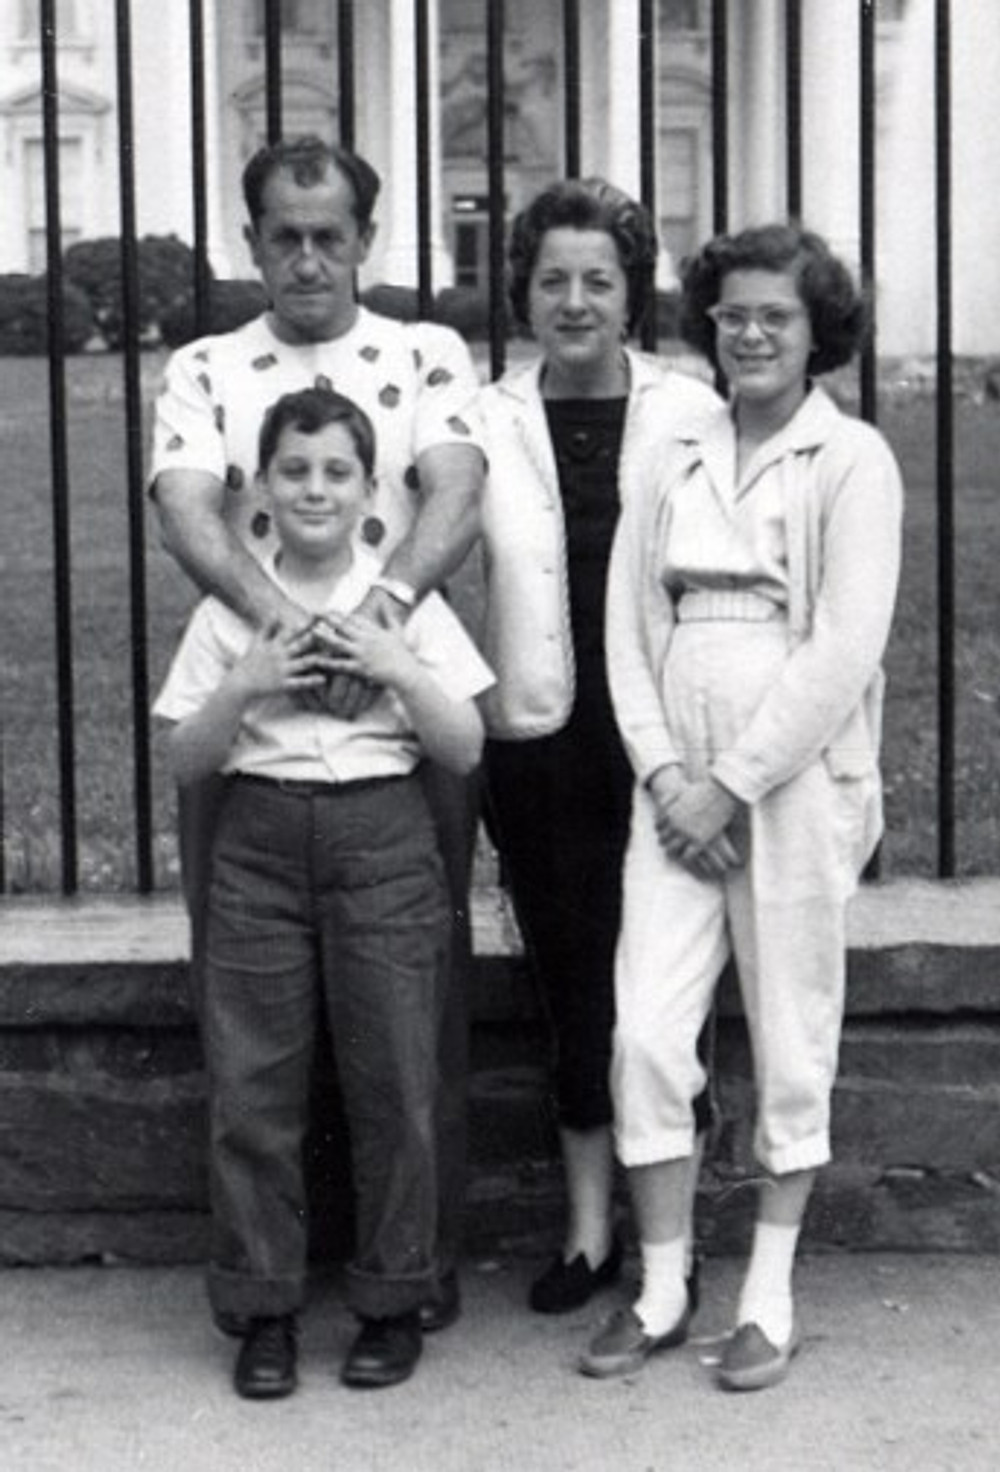 My family and I from a trip to Washington in 1959, about 5 years before my father passed.